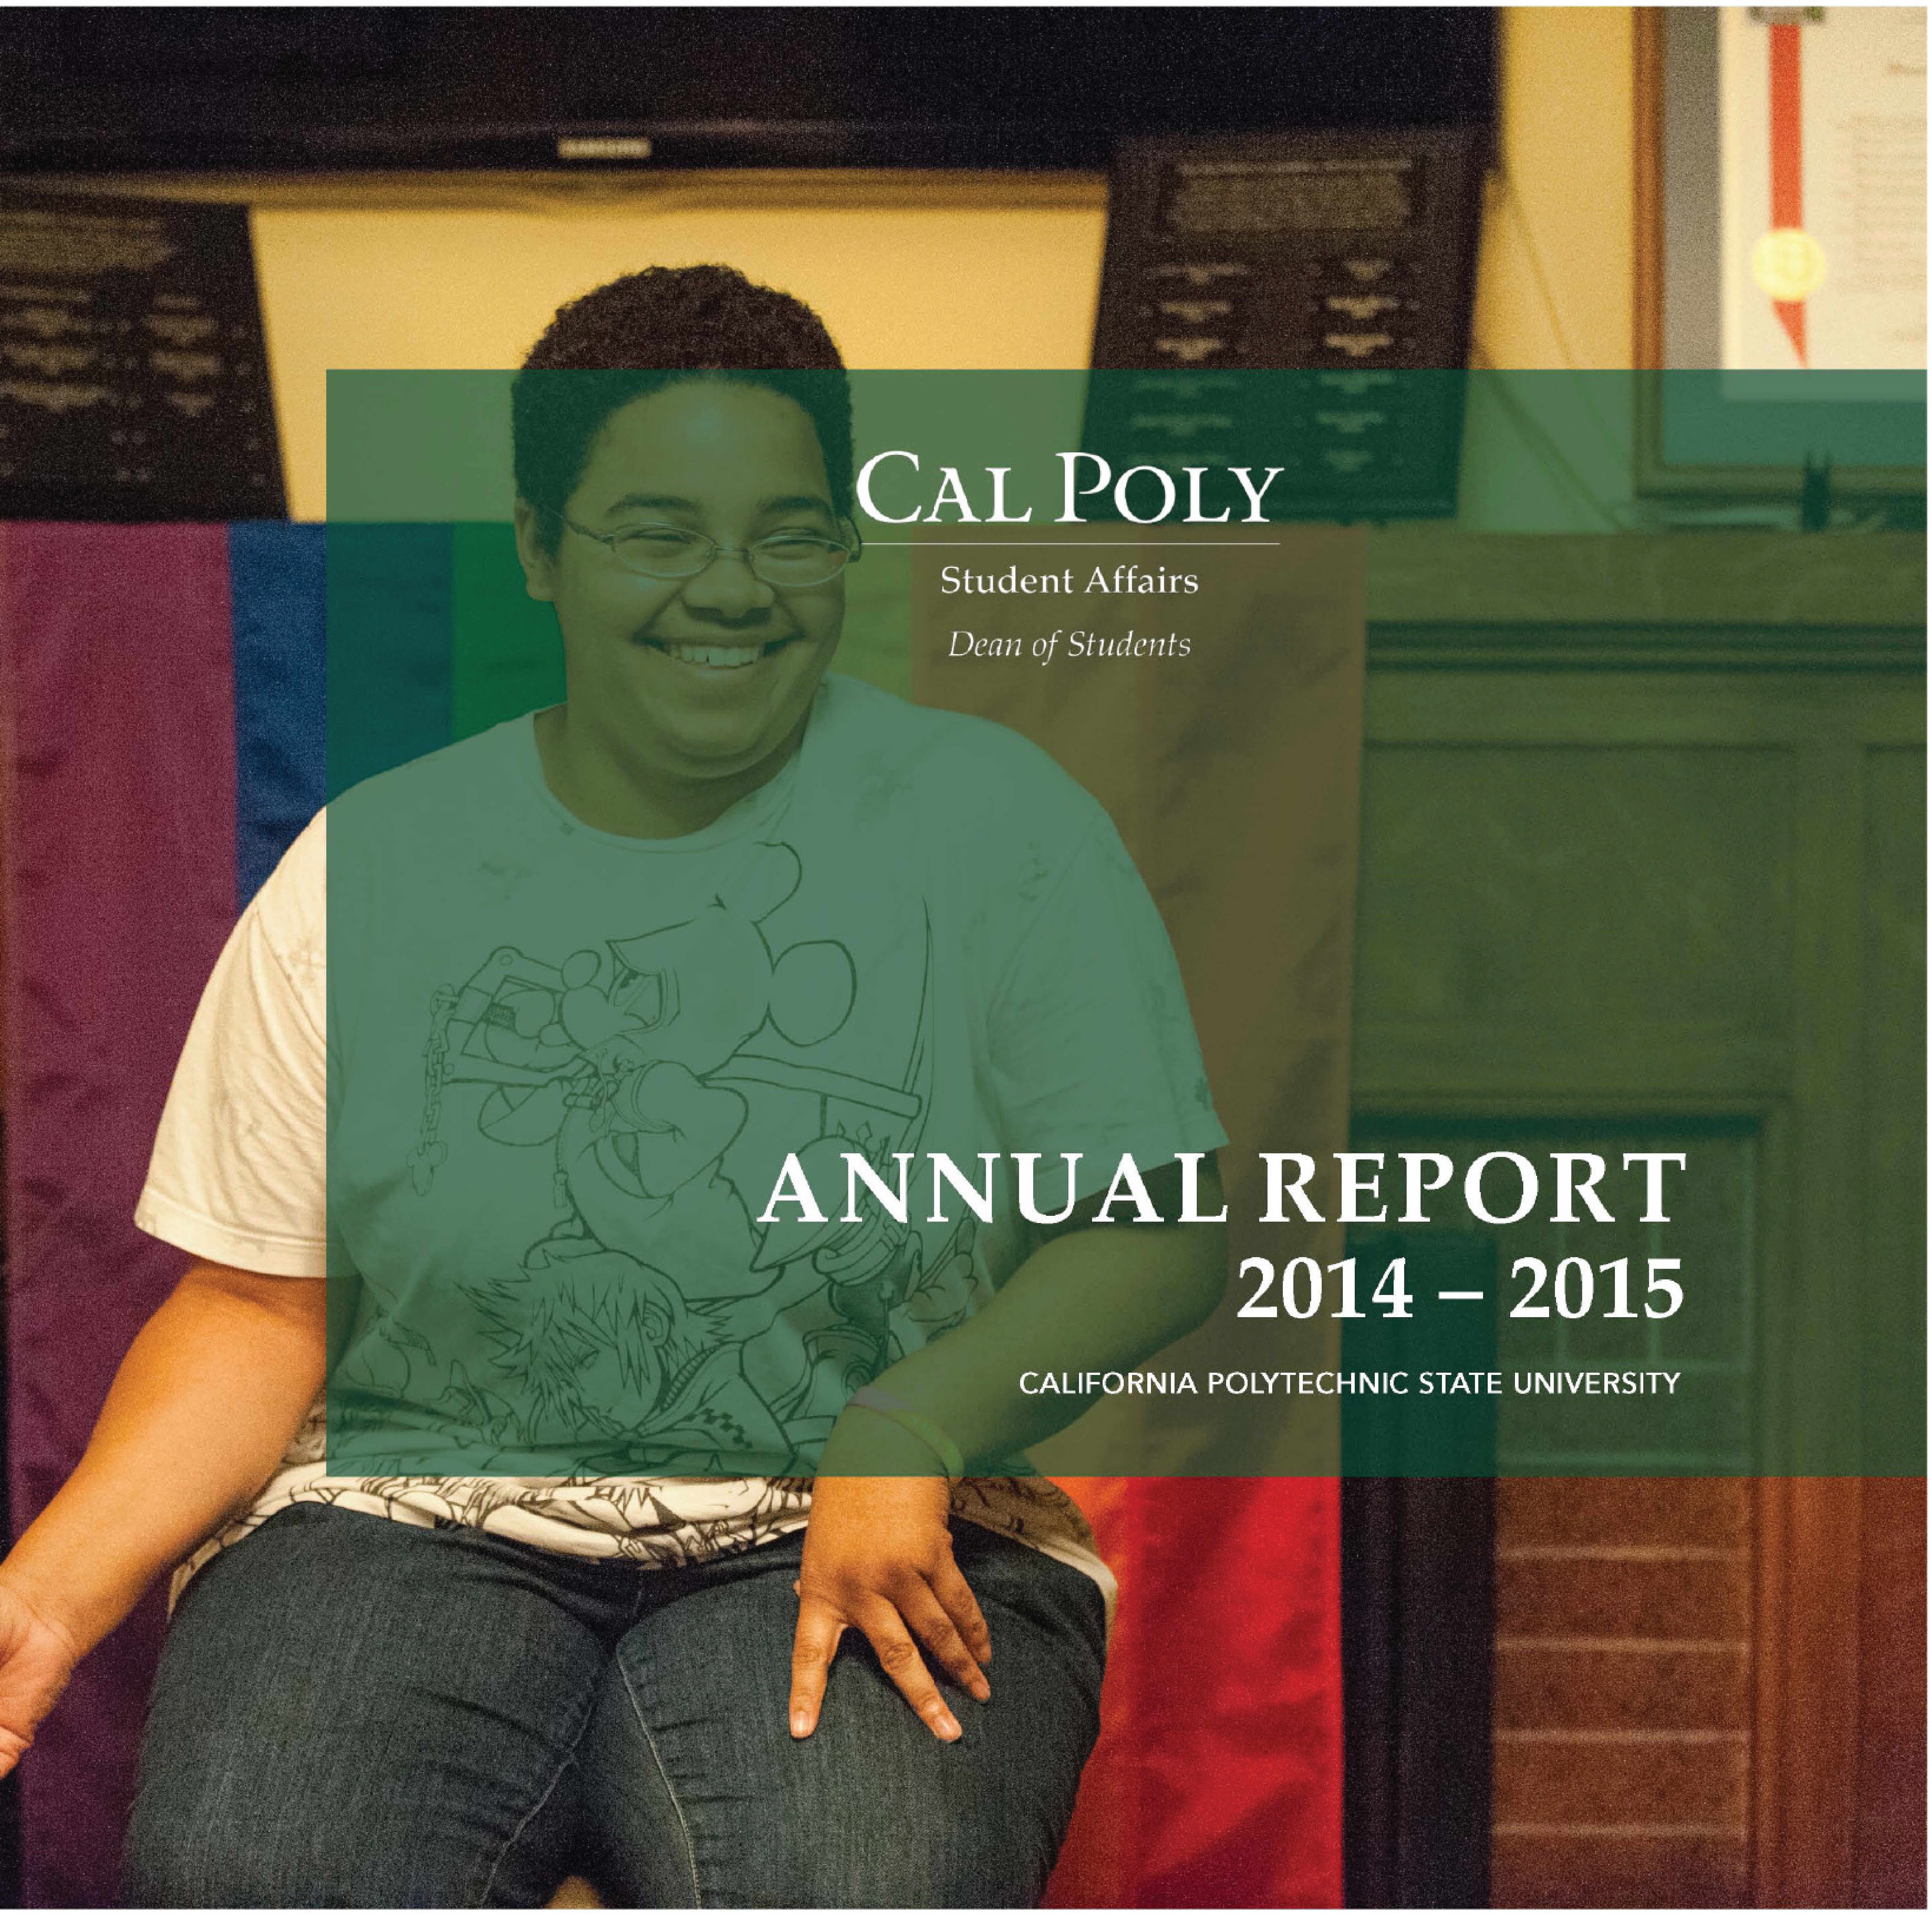 Annual Report Link